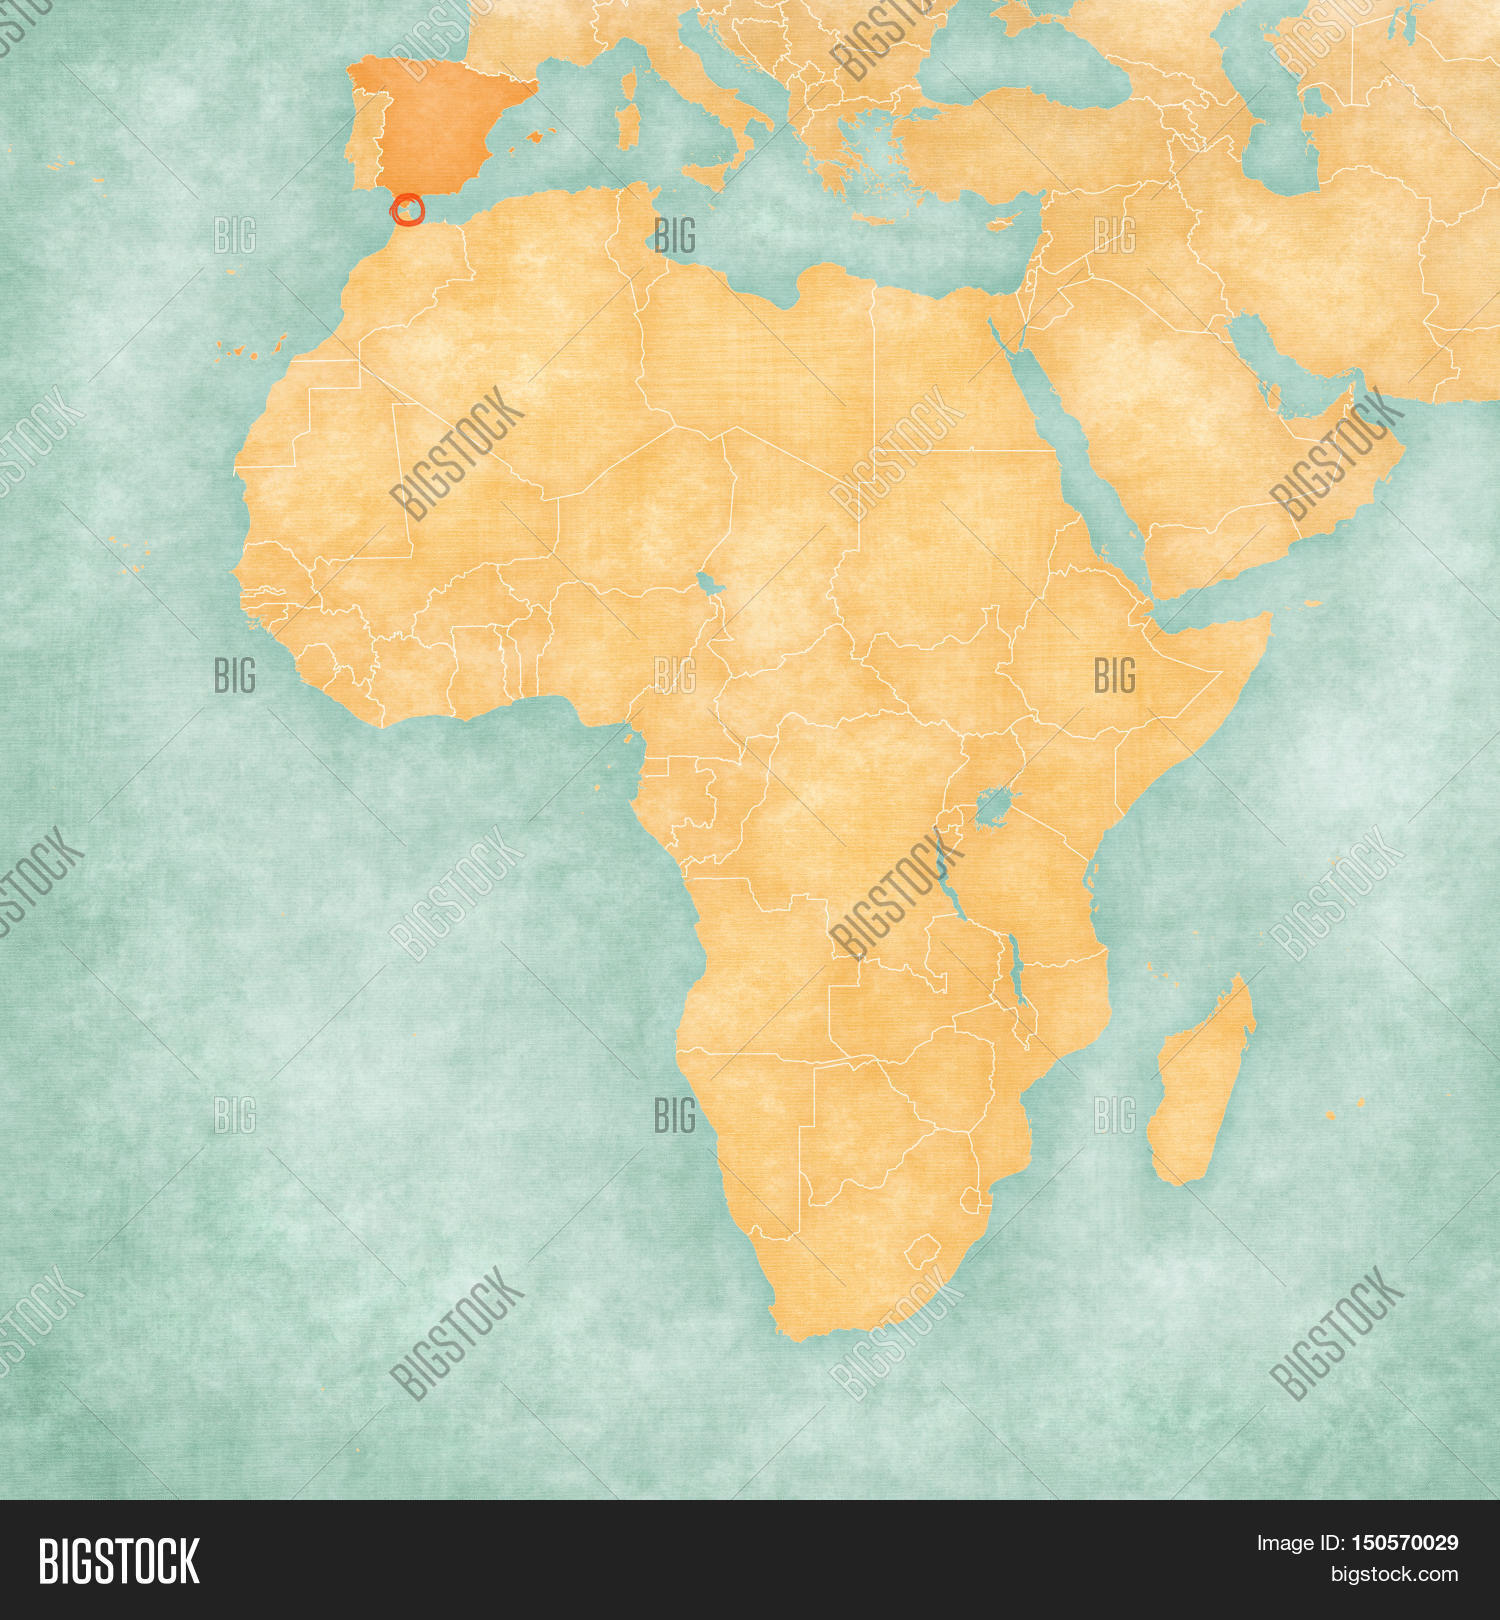 Map Africa - Ceuta Image & Photo (Free Trial) | Bigstock on